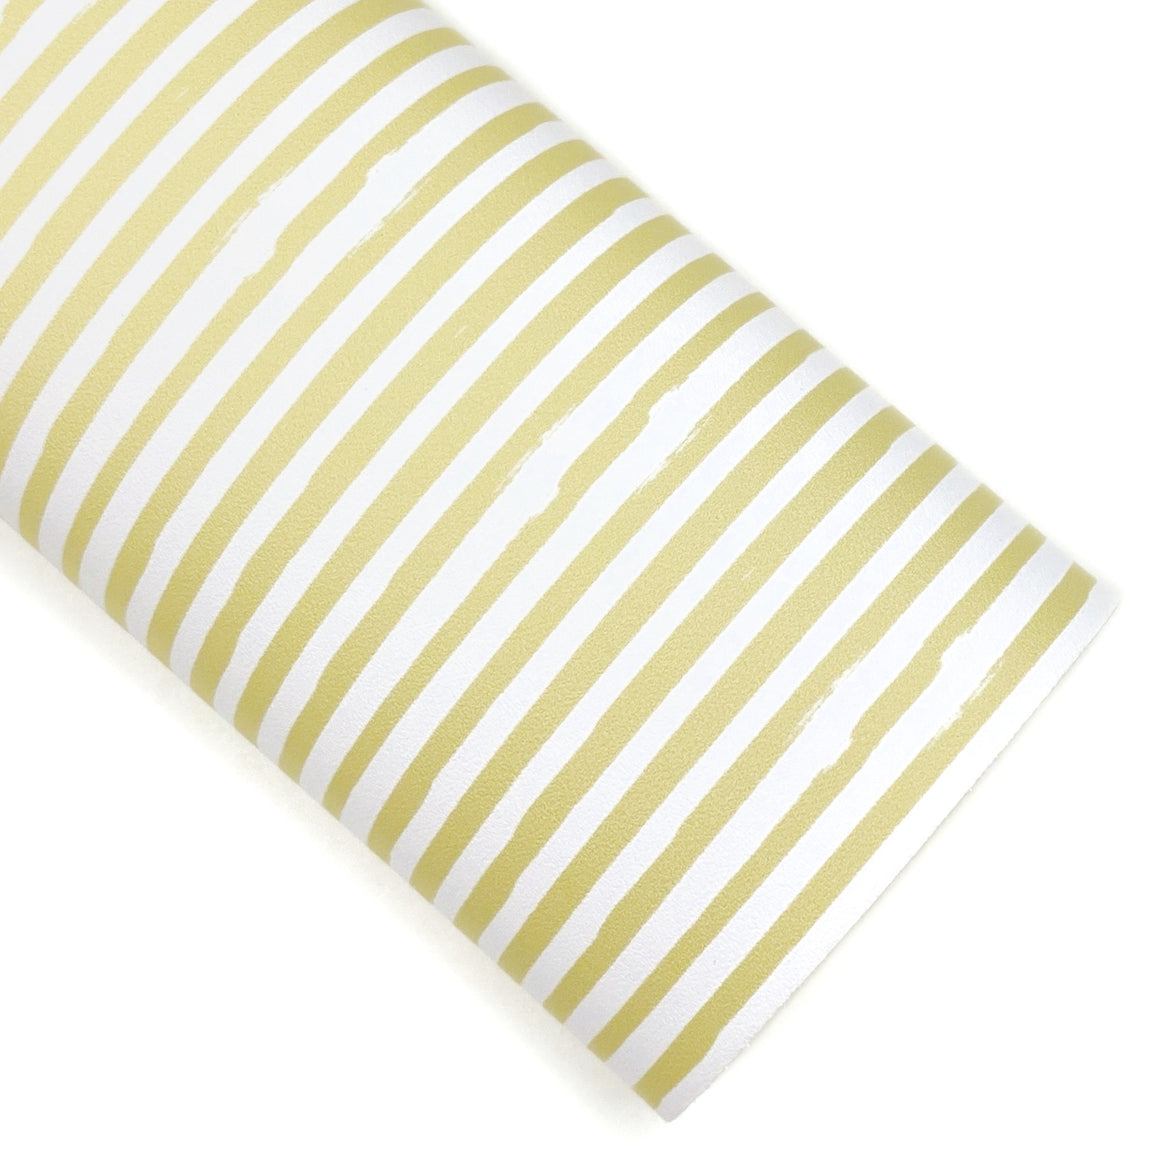 Yellow Flower Shop Stripes Vegan Leather